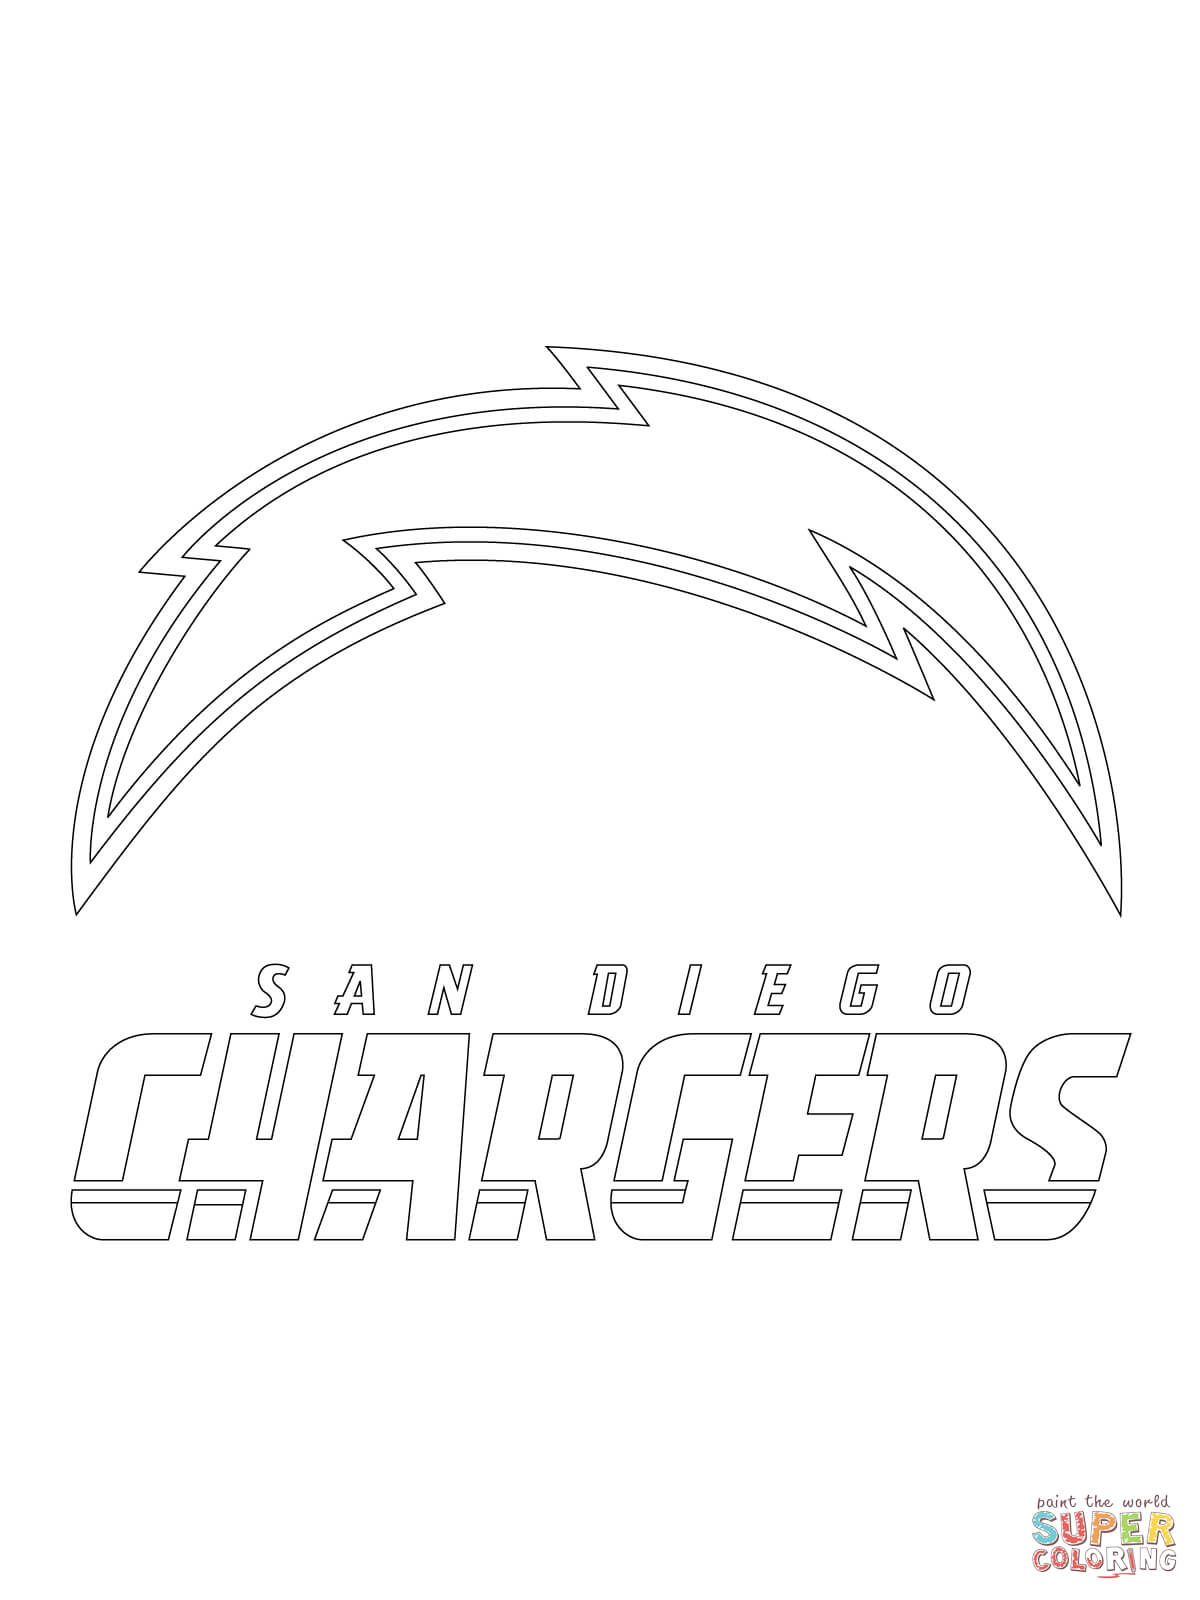 san diego chargers logo coloring page from nfl category select from 27252 printable crafts of cartoons nature animals bible and many more